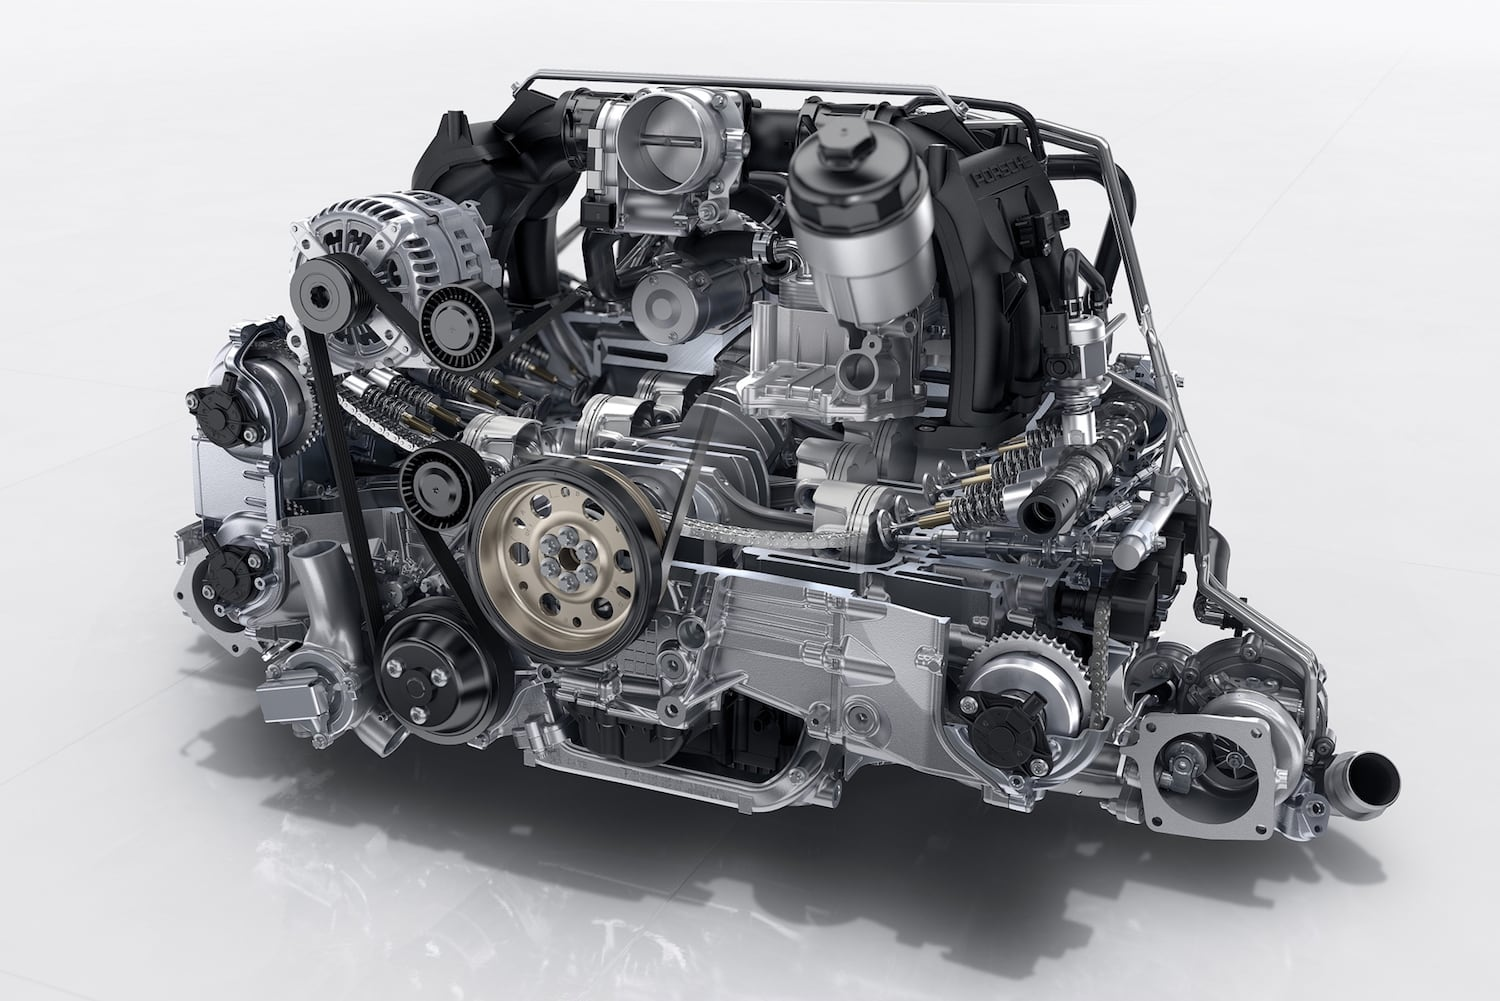 The new 9A2 engine for the new 991.2